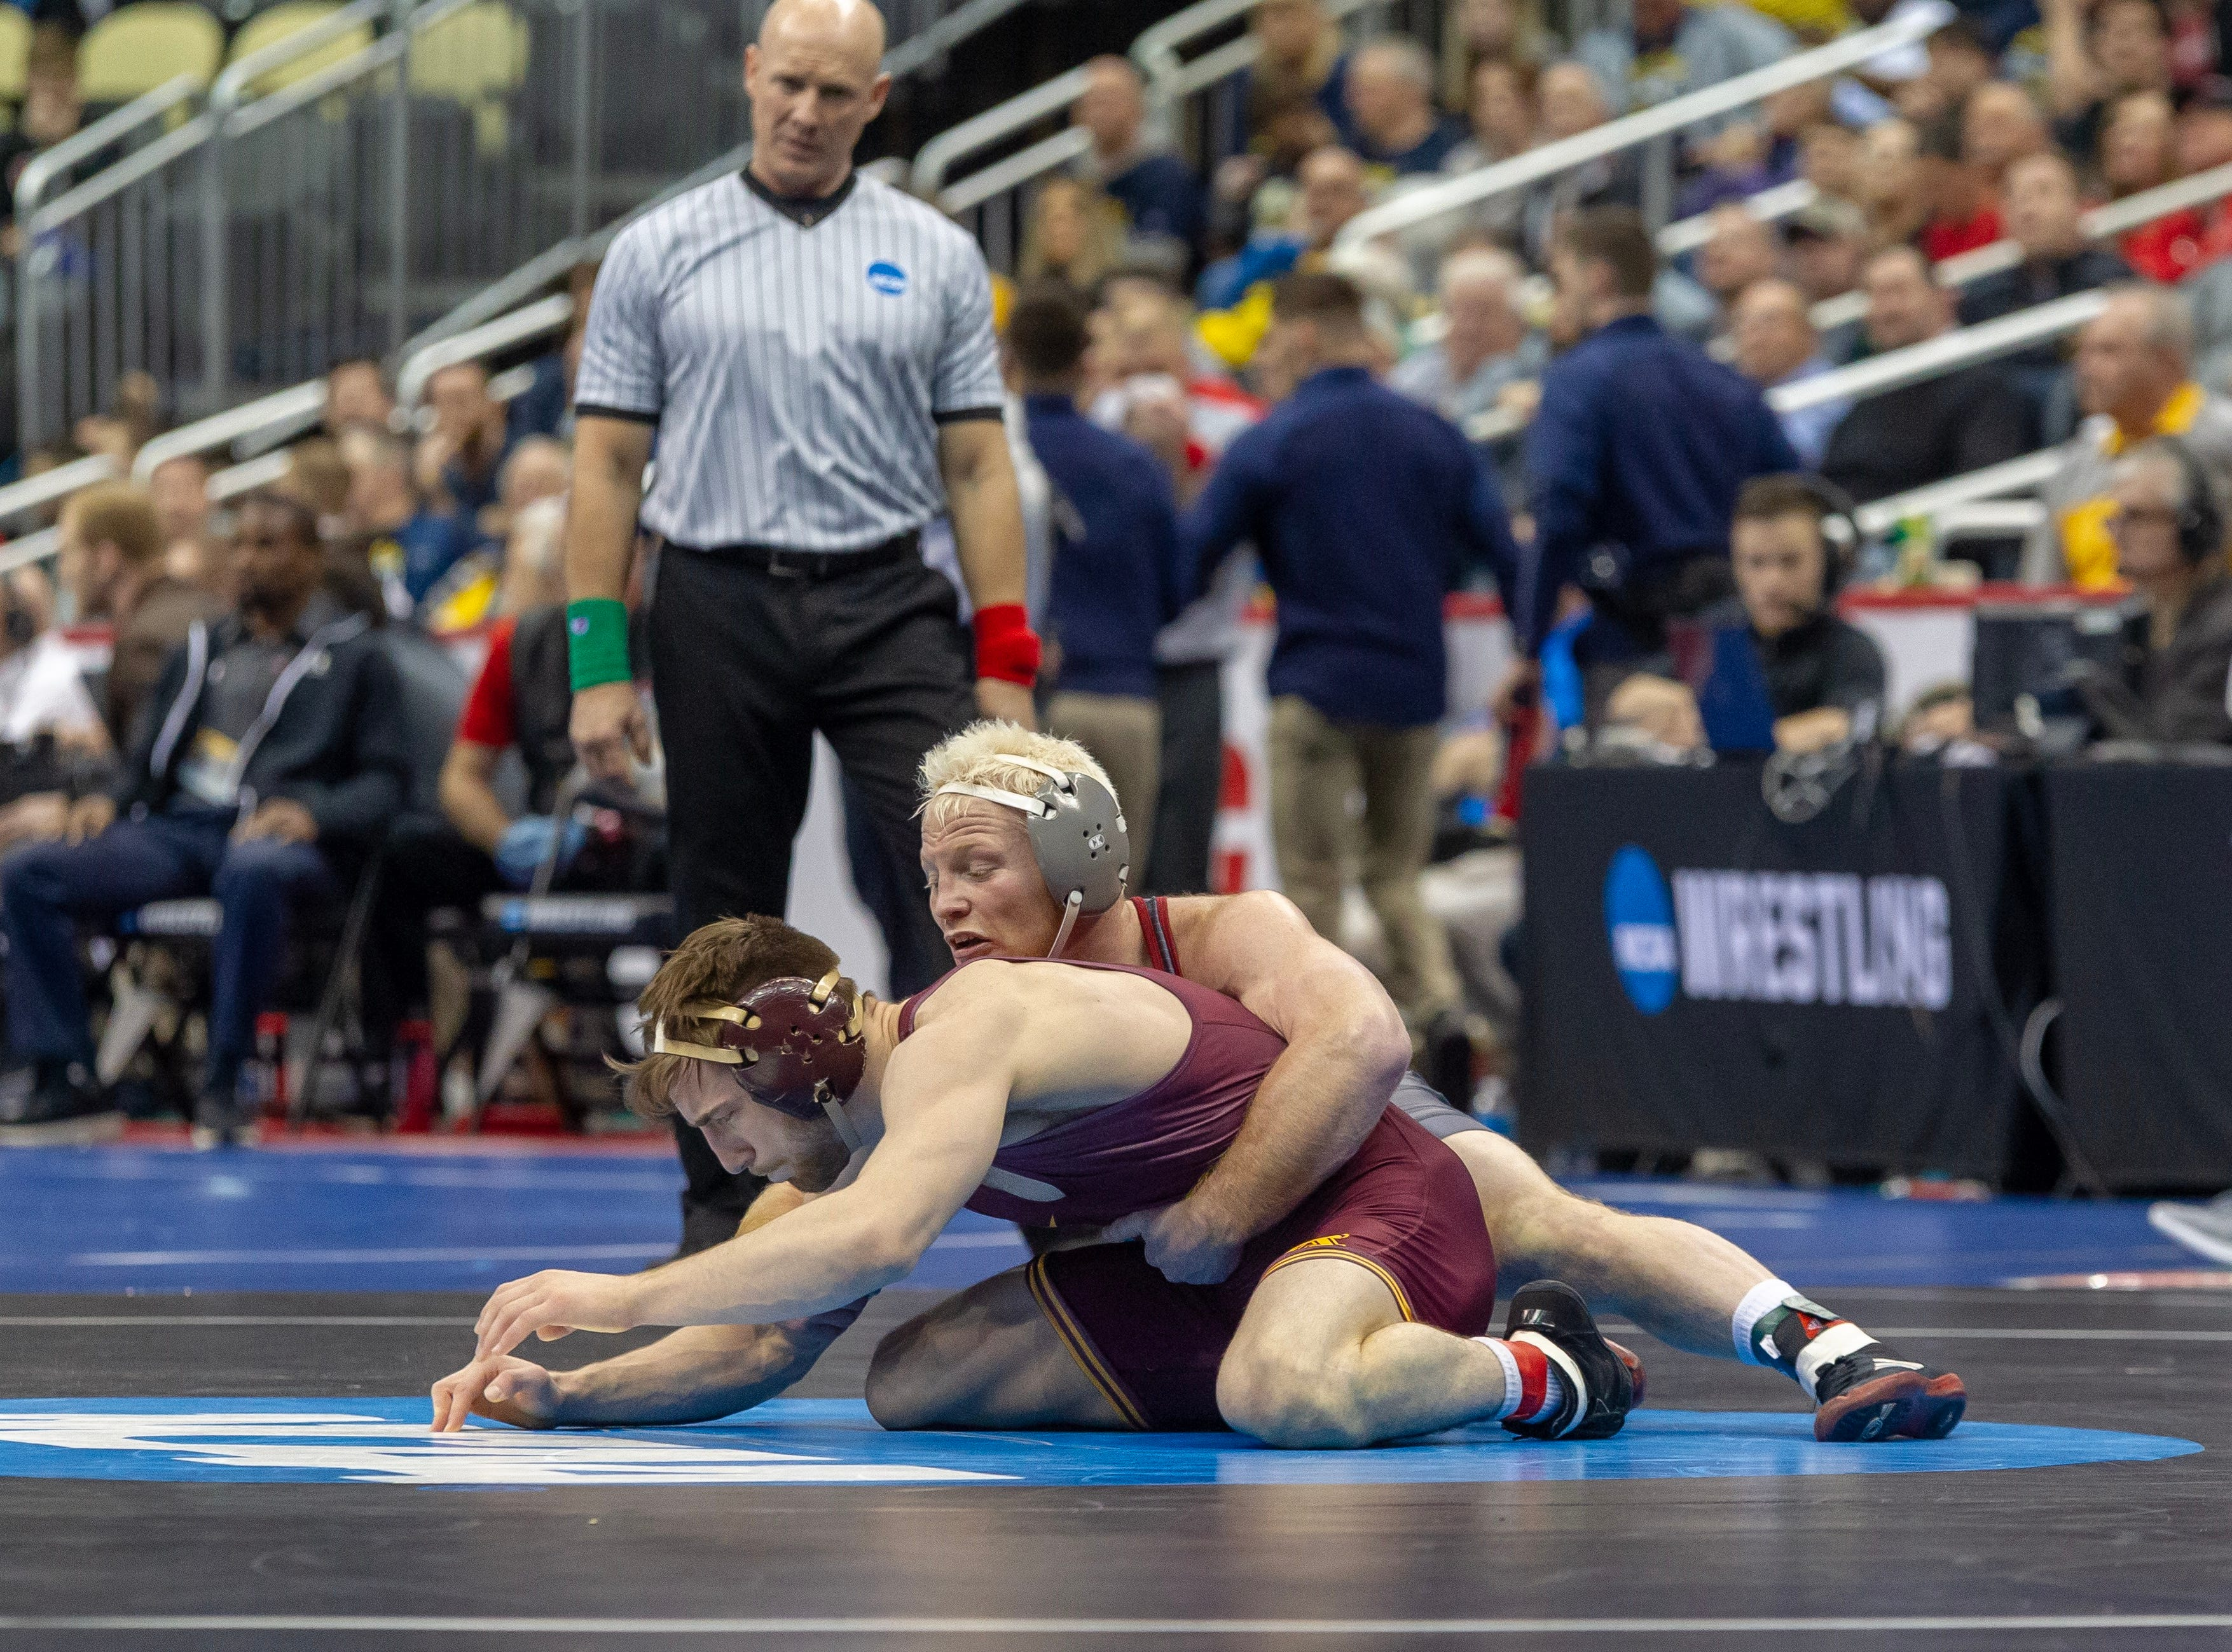 Chance Marsteller dominated his opening-round victory over Minnesota's Carson Brolsma. He earned a 16-3 major decision in Pittsburgh.